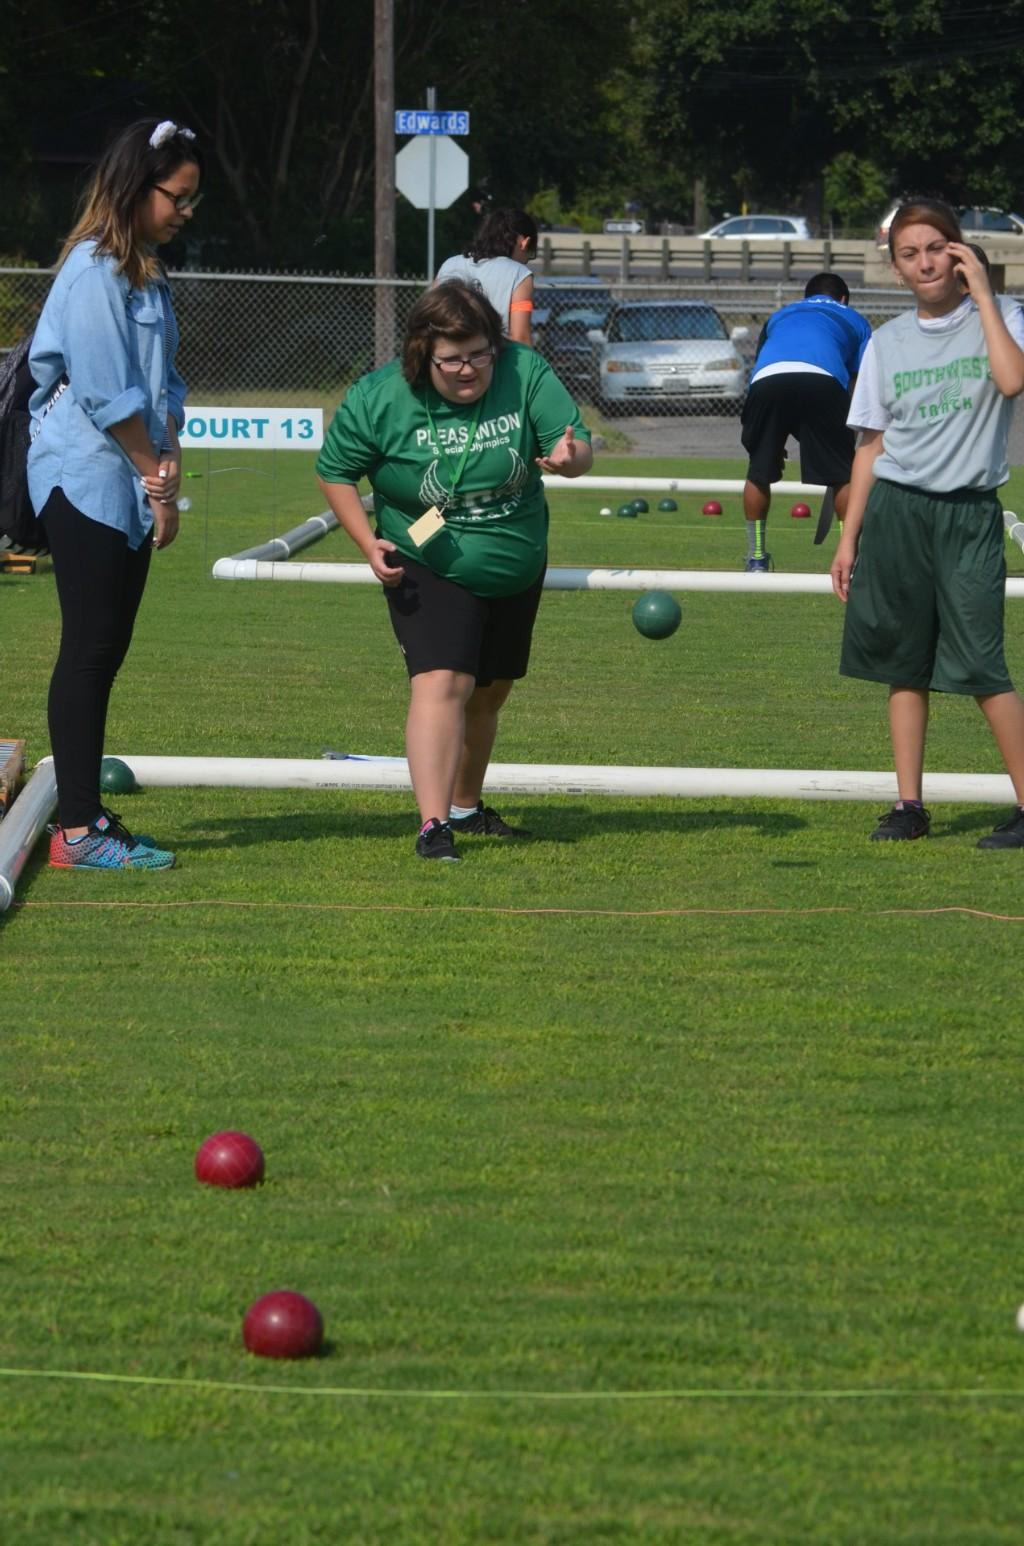 Throwing a bocce ball